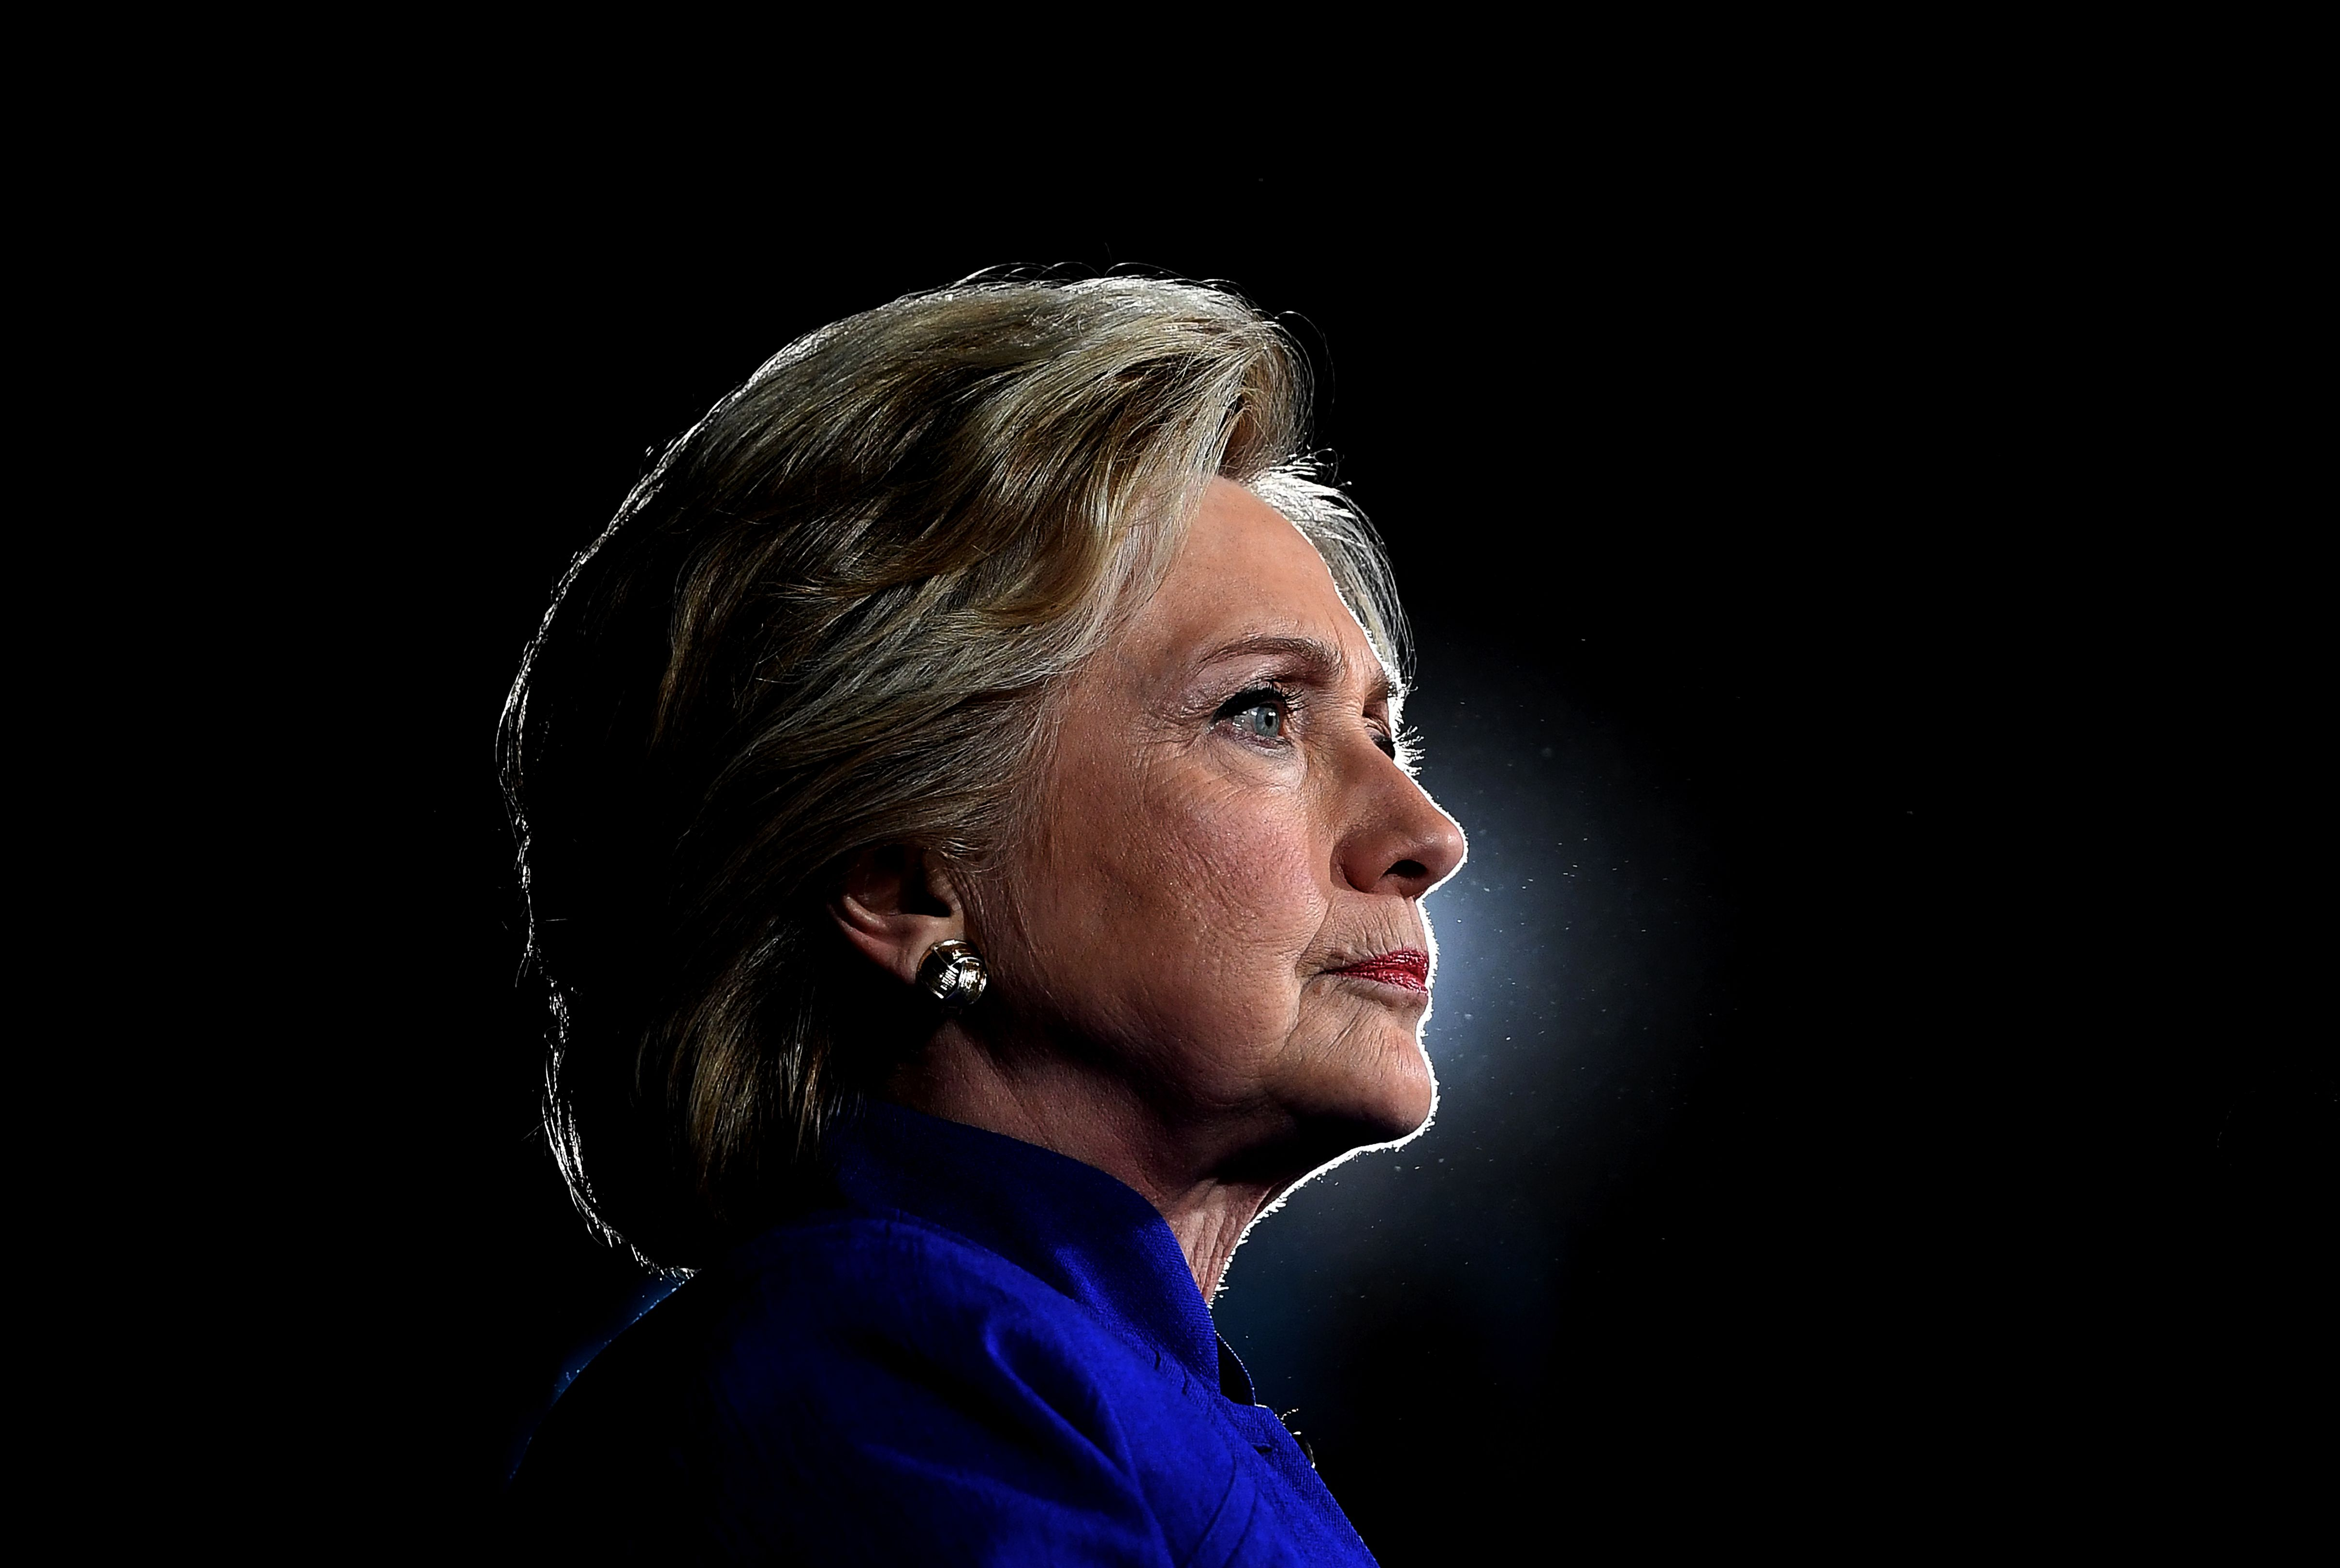 U.S. Democratic presidential nominee Hillary Clinton looks on during a campaign rally in Tempe, Ariz., on Nov. 2, 2016.